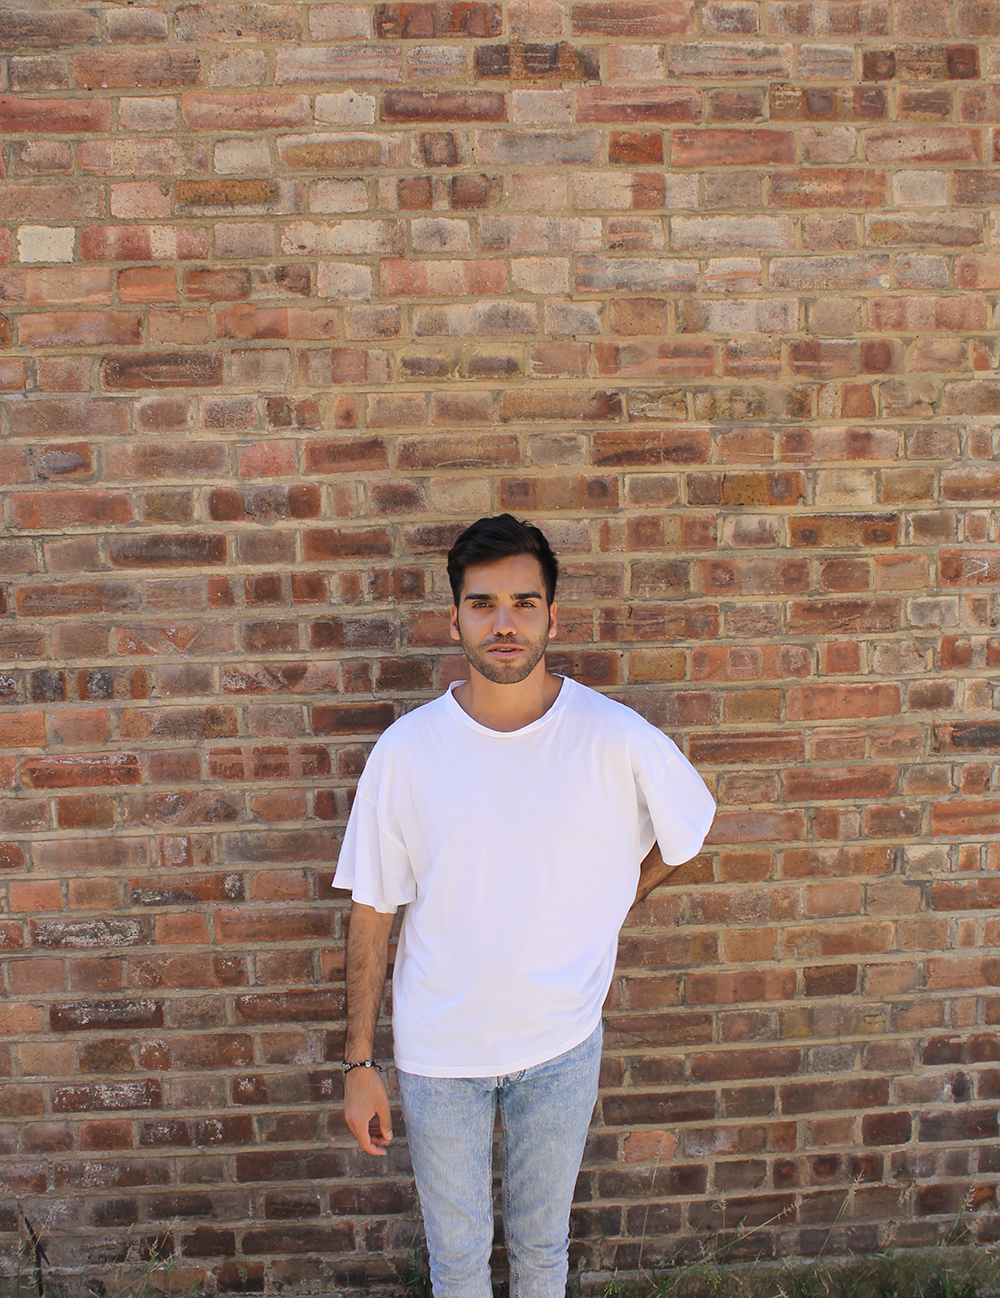 John Bingham in a white t-shirt and faded jeans standing in front of a red brick wall